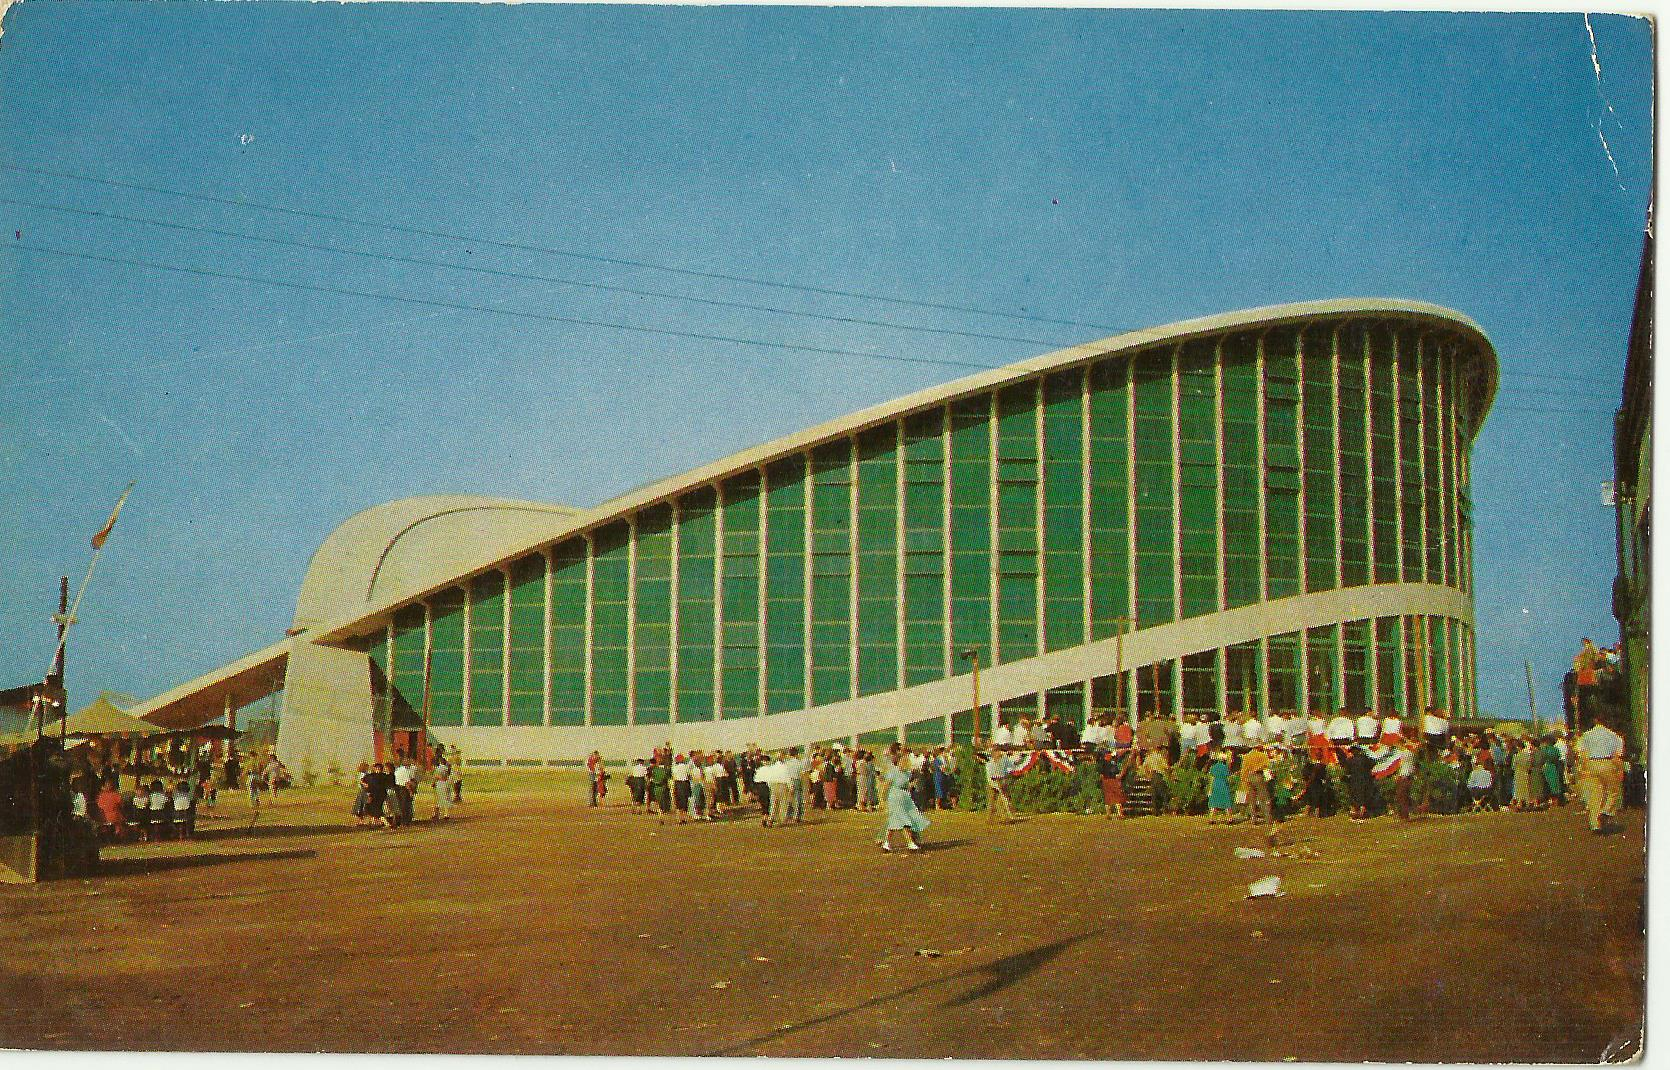 A 1960s postcard of the Dorton Arena. From the State Archives of North Carolina.